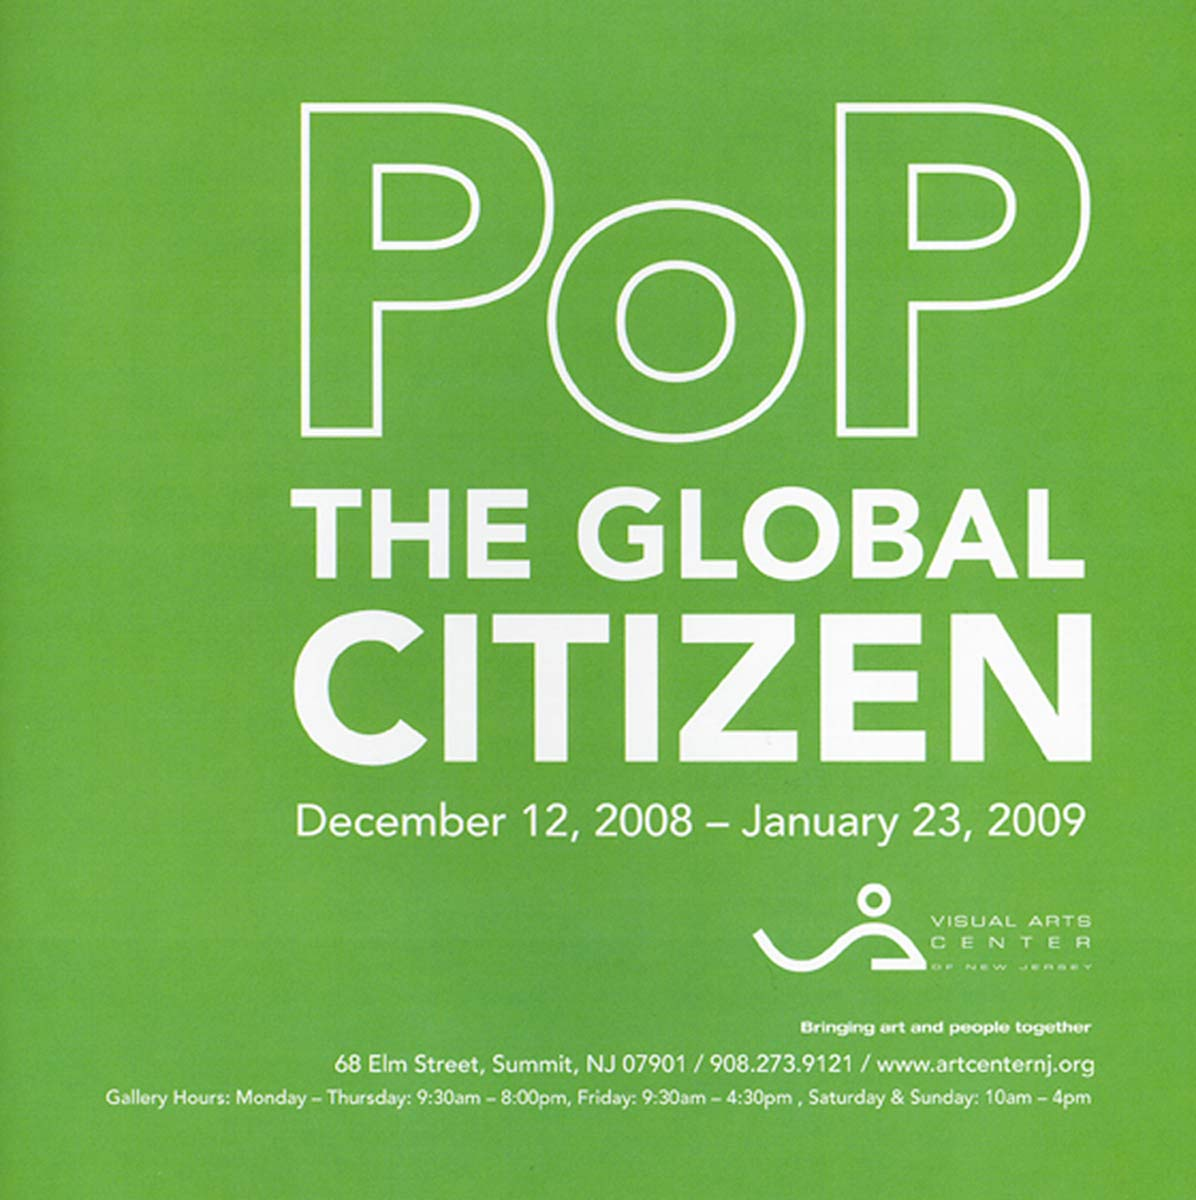 Excerpt from Exhibition Catalog, Pop: The Global Citizen, 2009